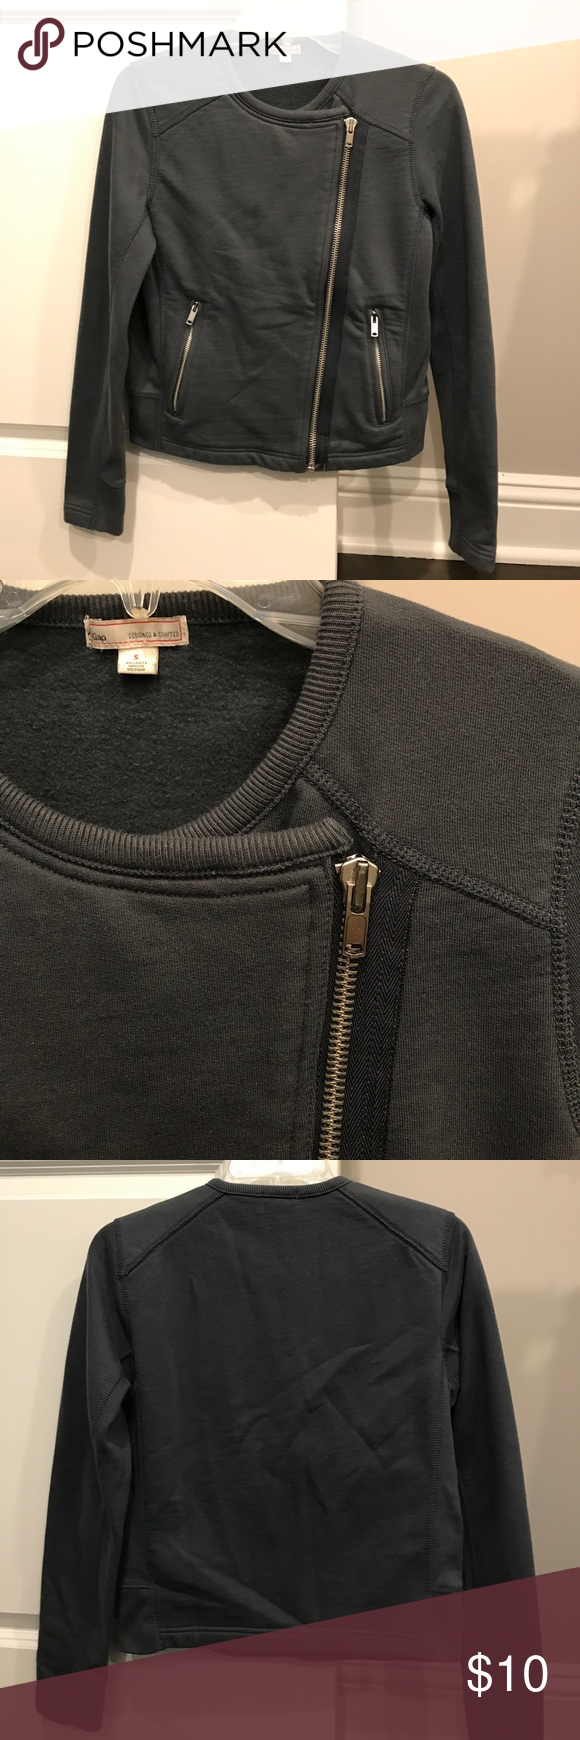 Gap Moto Jacket Grey Gap sweatshirt jacket with moto details. Very comfy! Ribbing inside arms and on sides of jacket is slightly pilled. GAP Jackets & Coats Blazers